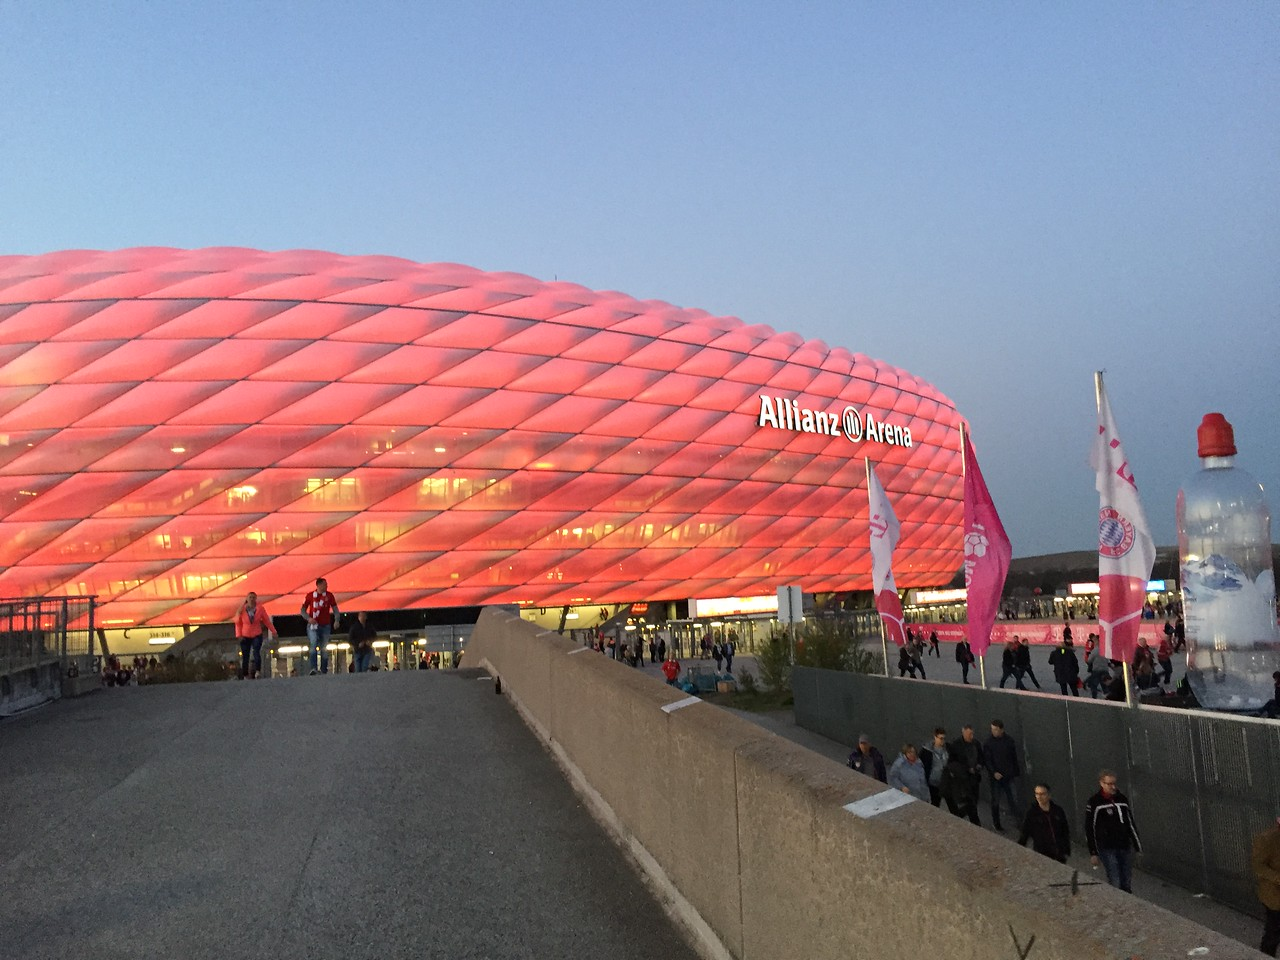 We arrived in Frankfurt and drove to Munich where Fernando attended a  Bundesliga soccer match, the top tier of the German football league system, between Bayern Munich and Dortmund.  Here is the Munich stadium.